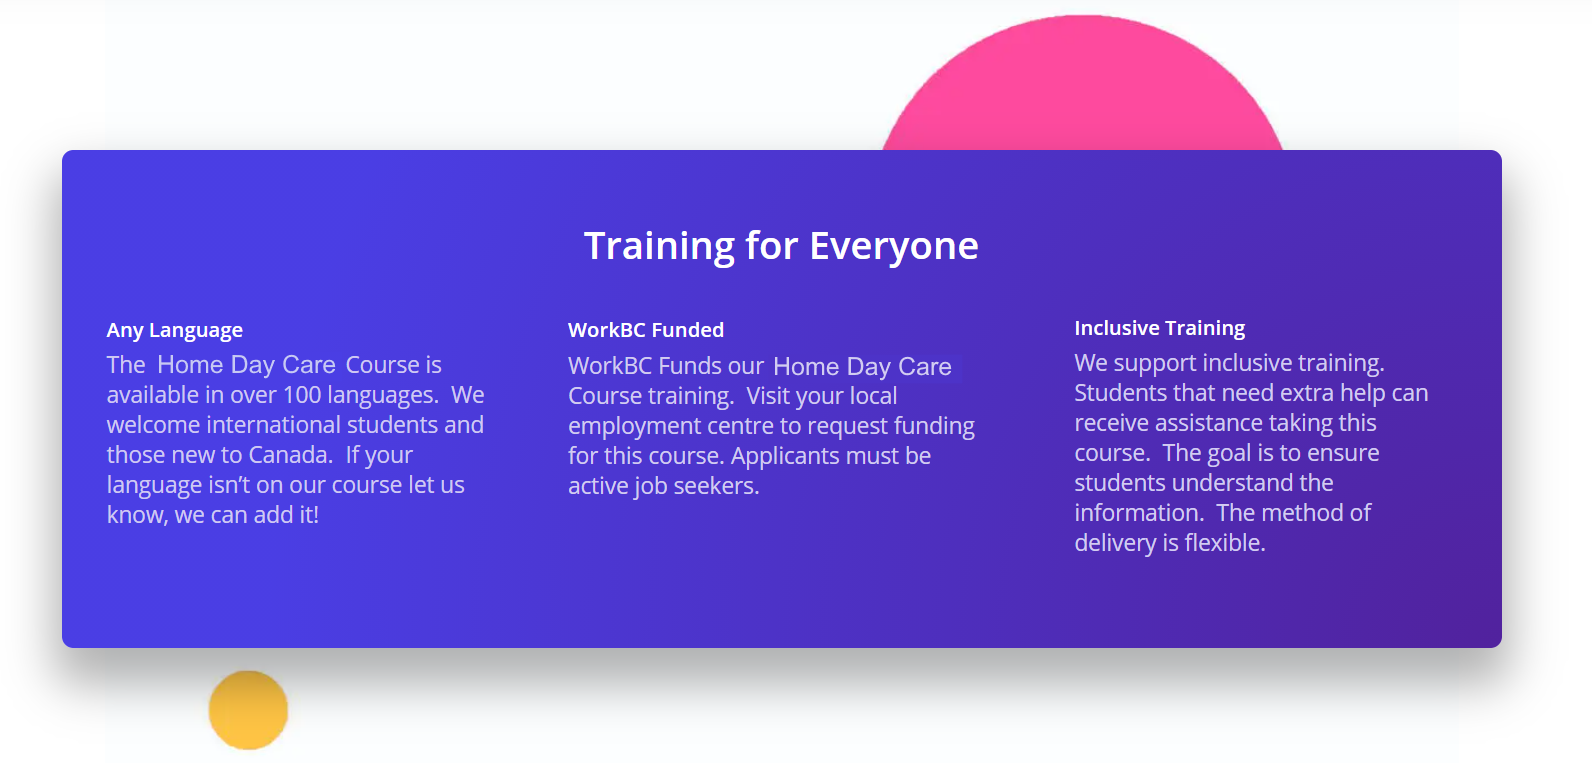 Training for Everyone | Home Day Care Course